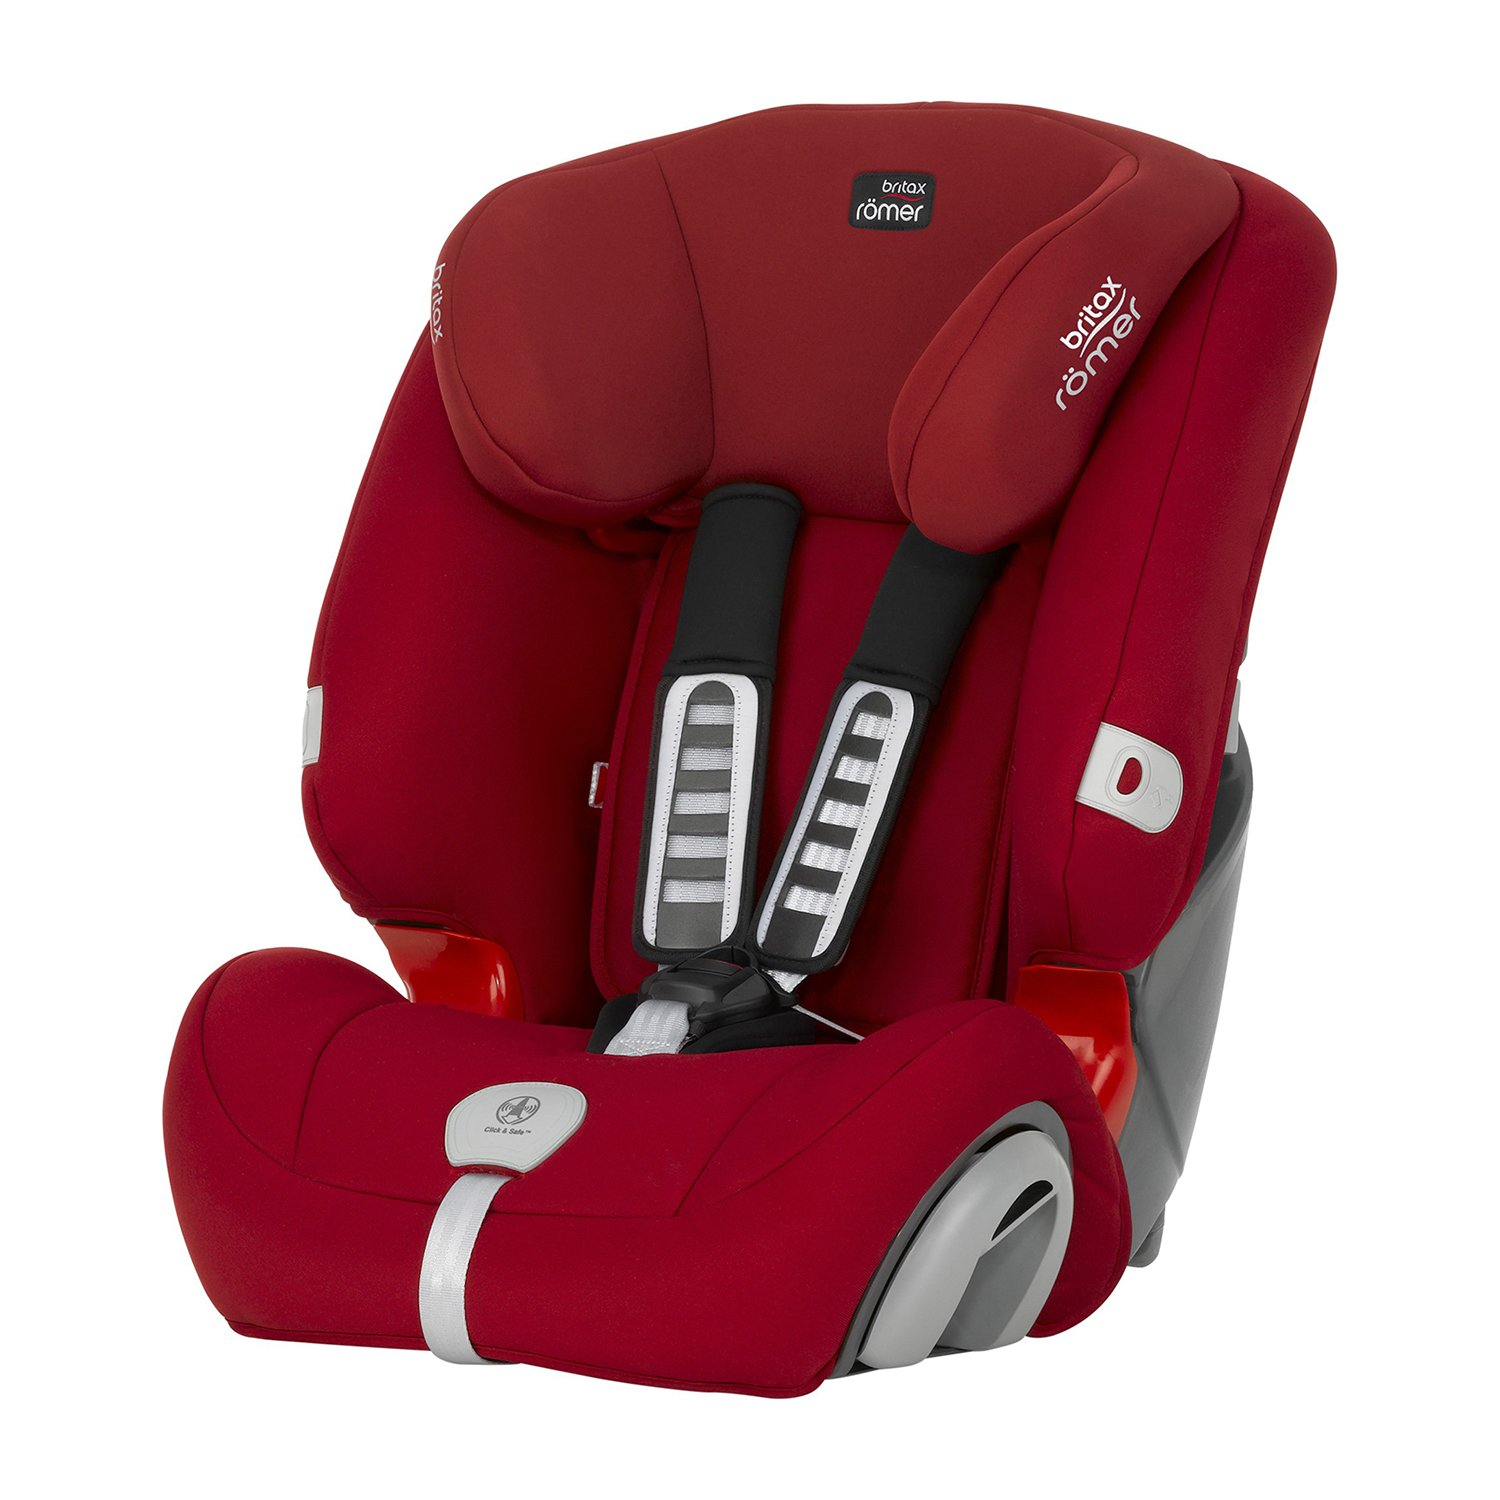 scaun auto copii britax-romer, 1 2 3 plus flame red